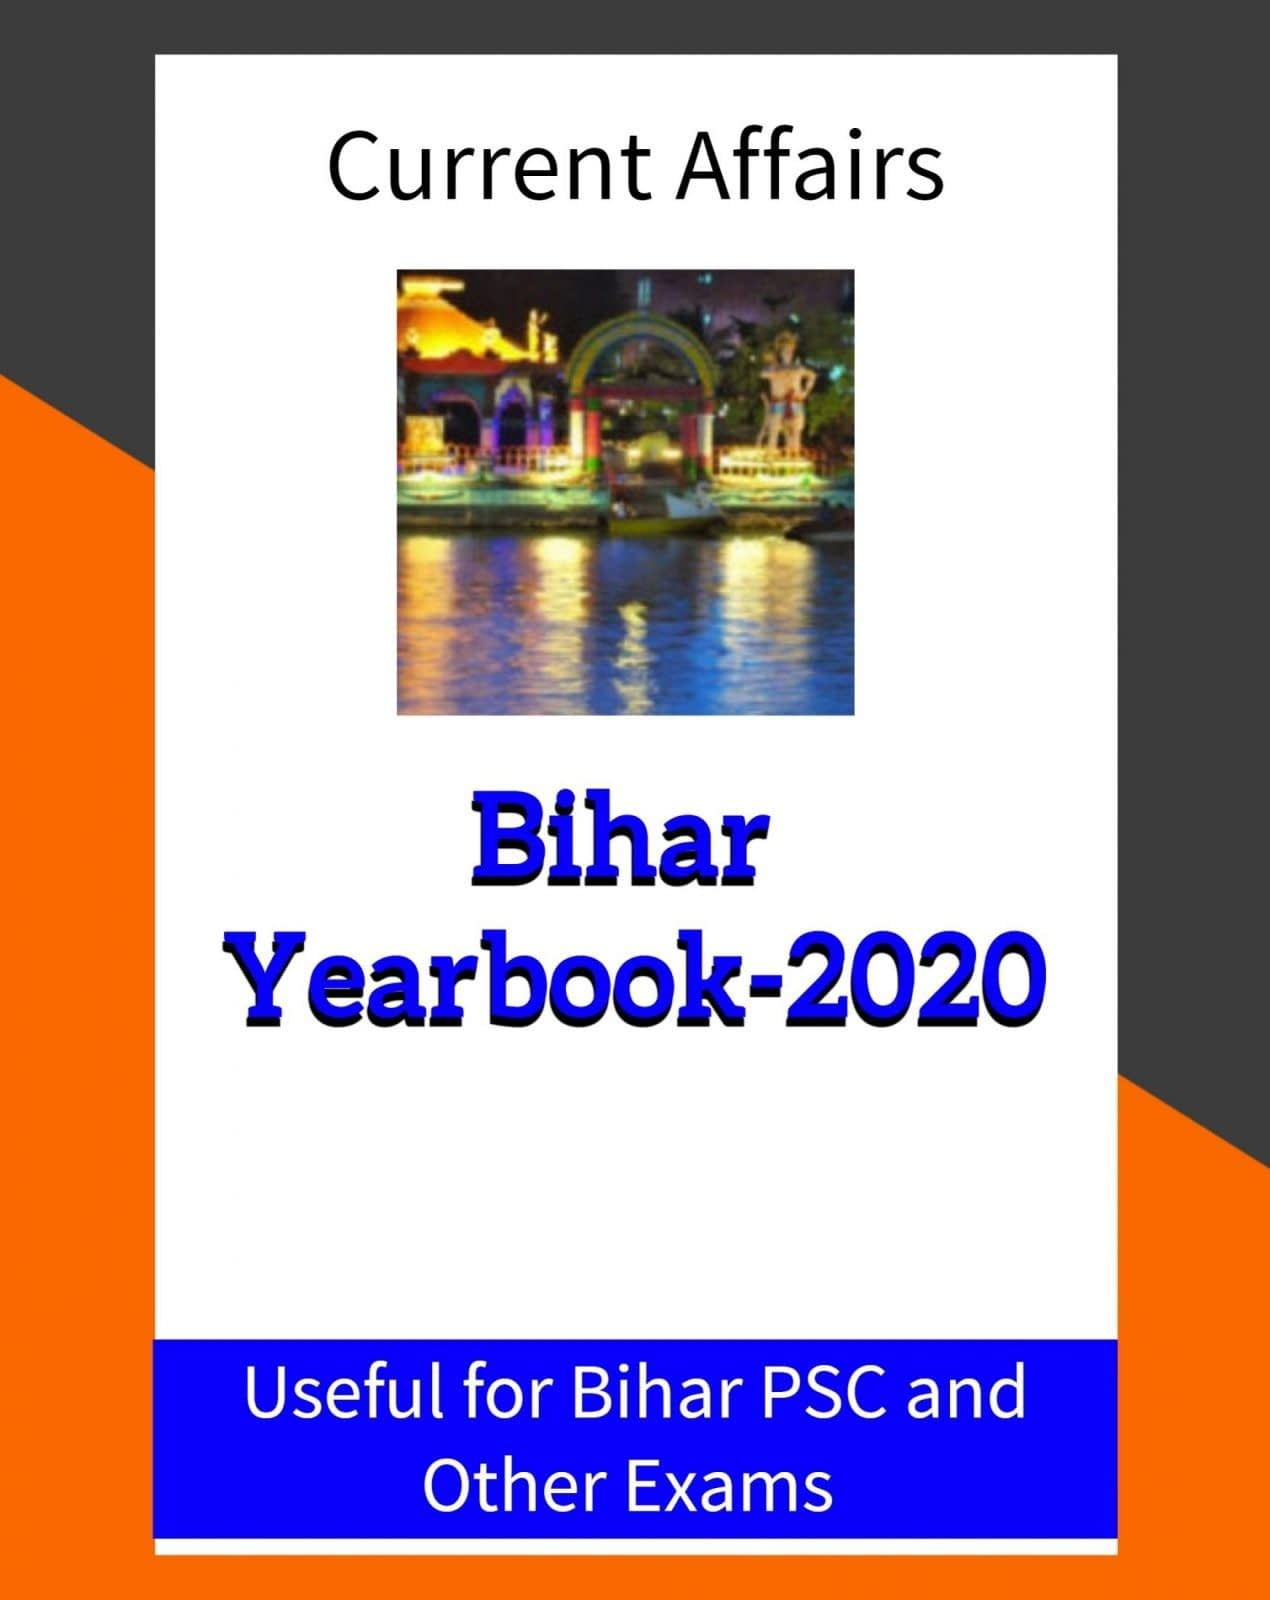 BPSC Bihar Yearbook 2020 : Latest and Current Affairs